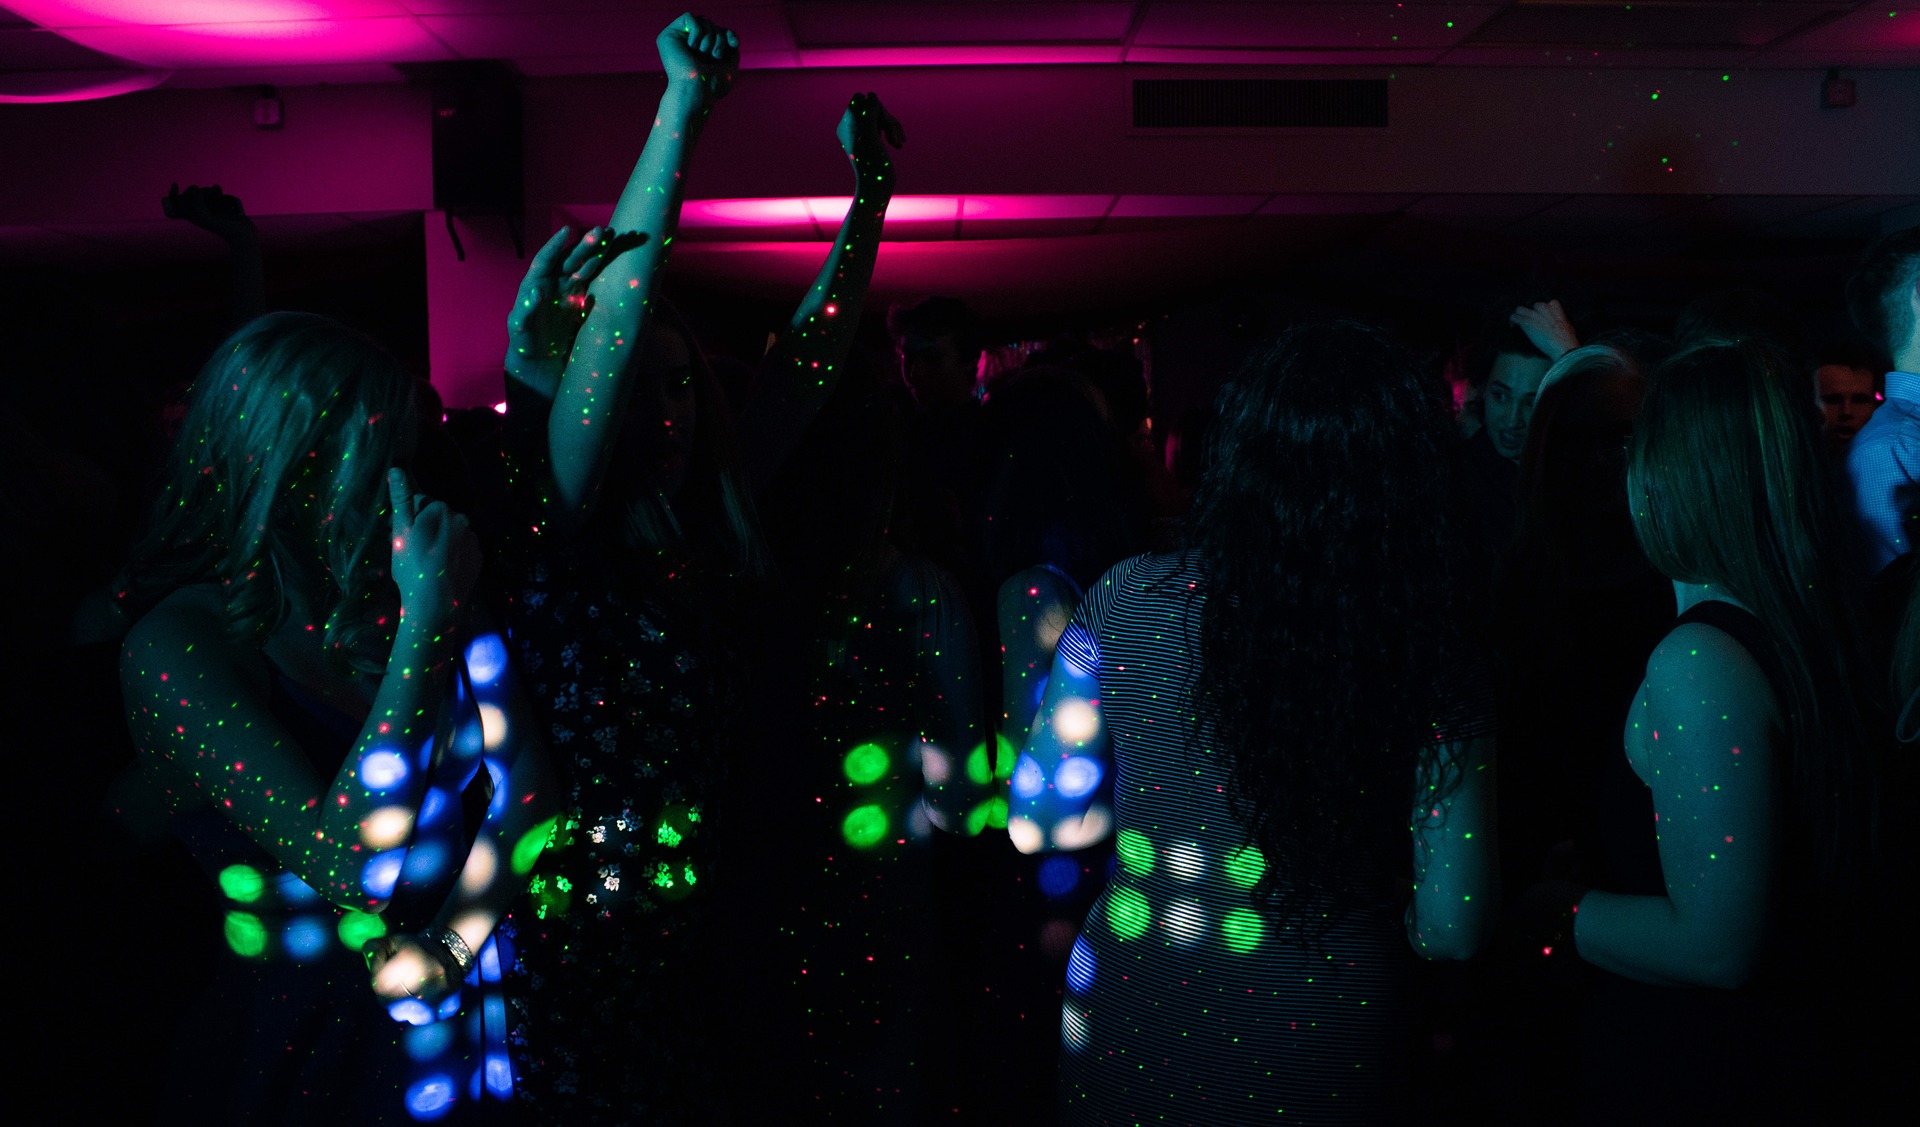 Book A Party Venue Online And Have The Greatest Evening